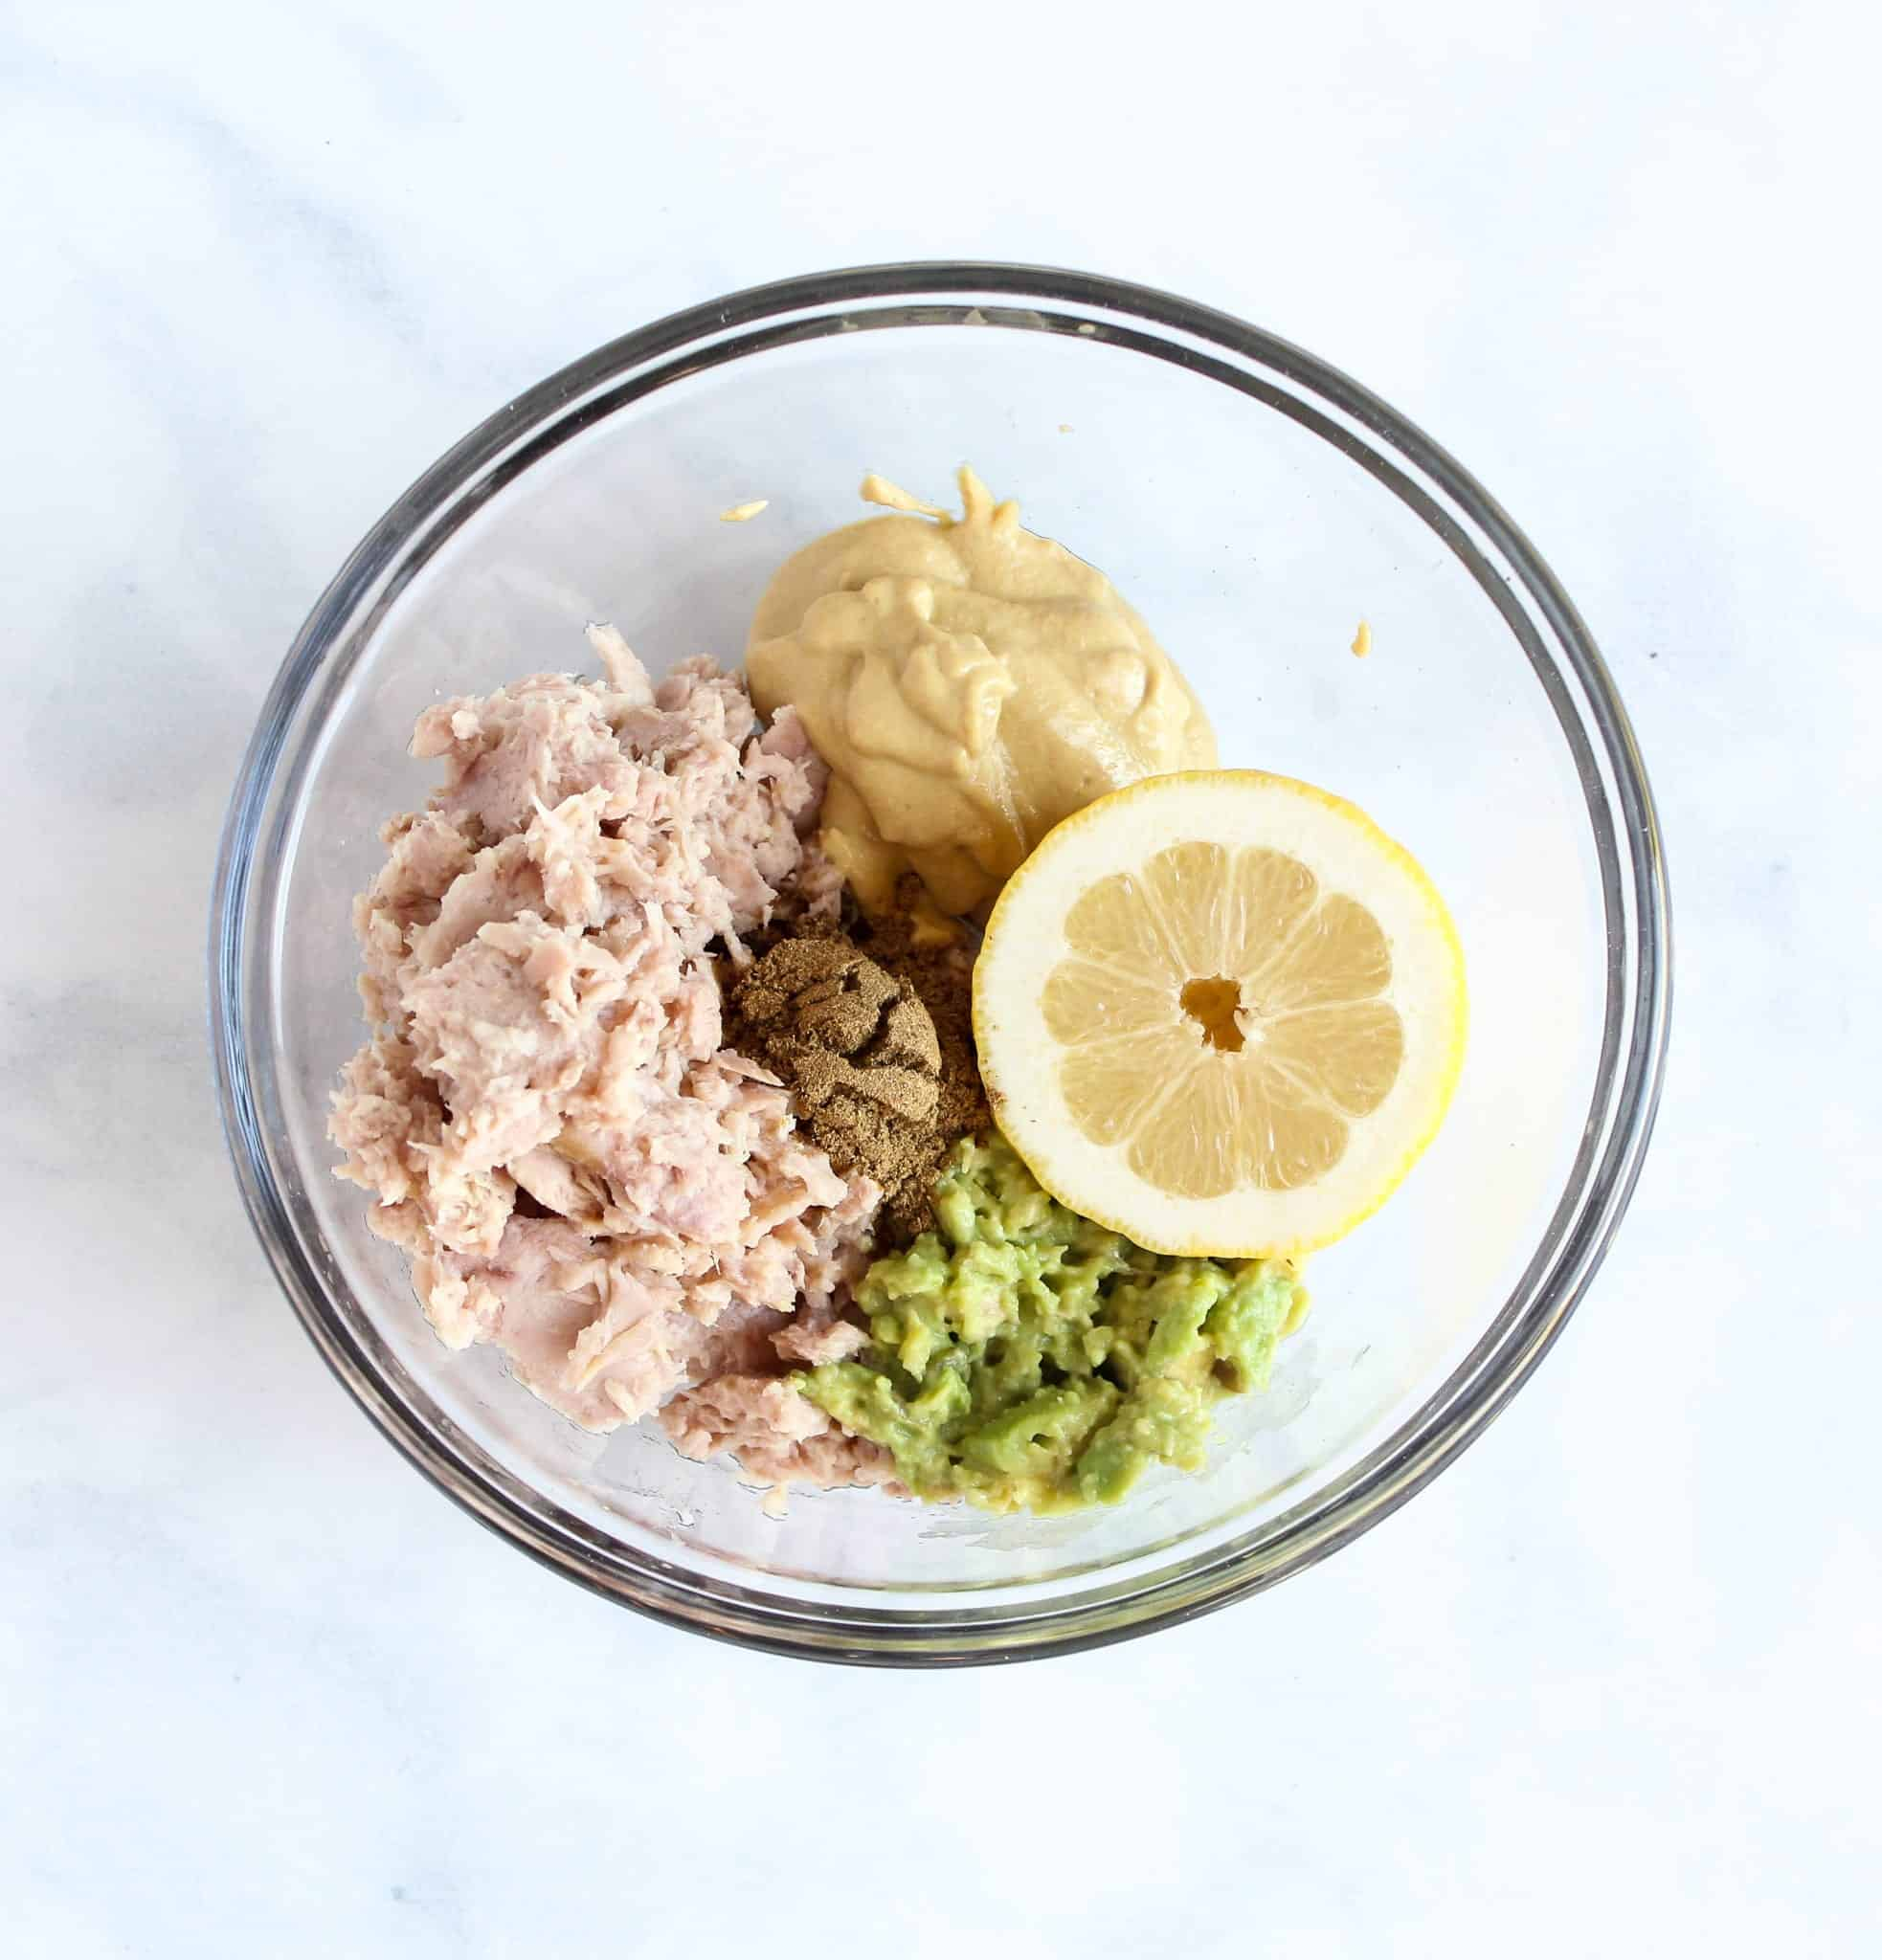 Healthy Tuna Salad Recipe (with Lemon and Avocado!) #glutenfree #dairyfree #lowfodmap